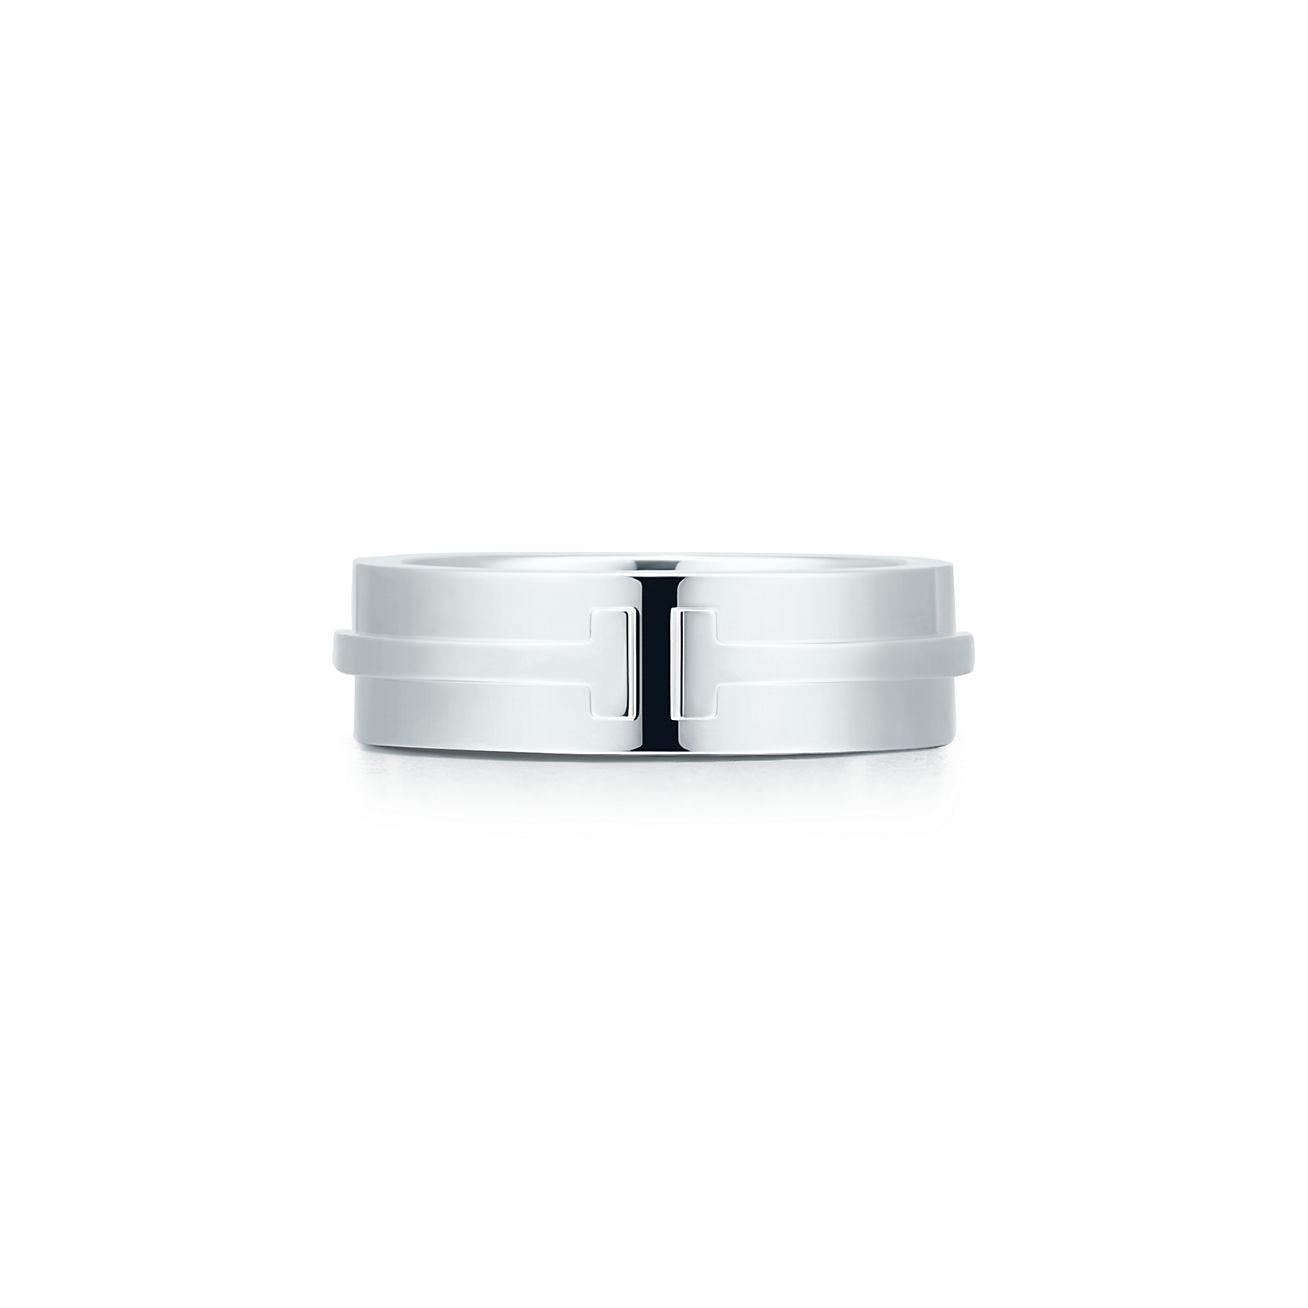 Tiffany T Two ring in titanium and sterling silver - Size 10 1/2 Tiffany & Co.